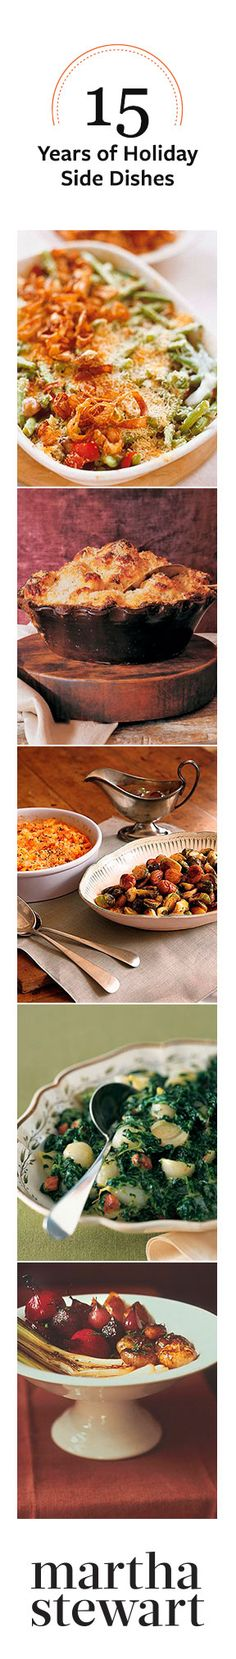 15 Years of Holiday Side Dishes from Martha Stewart